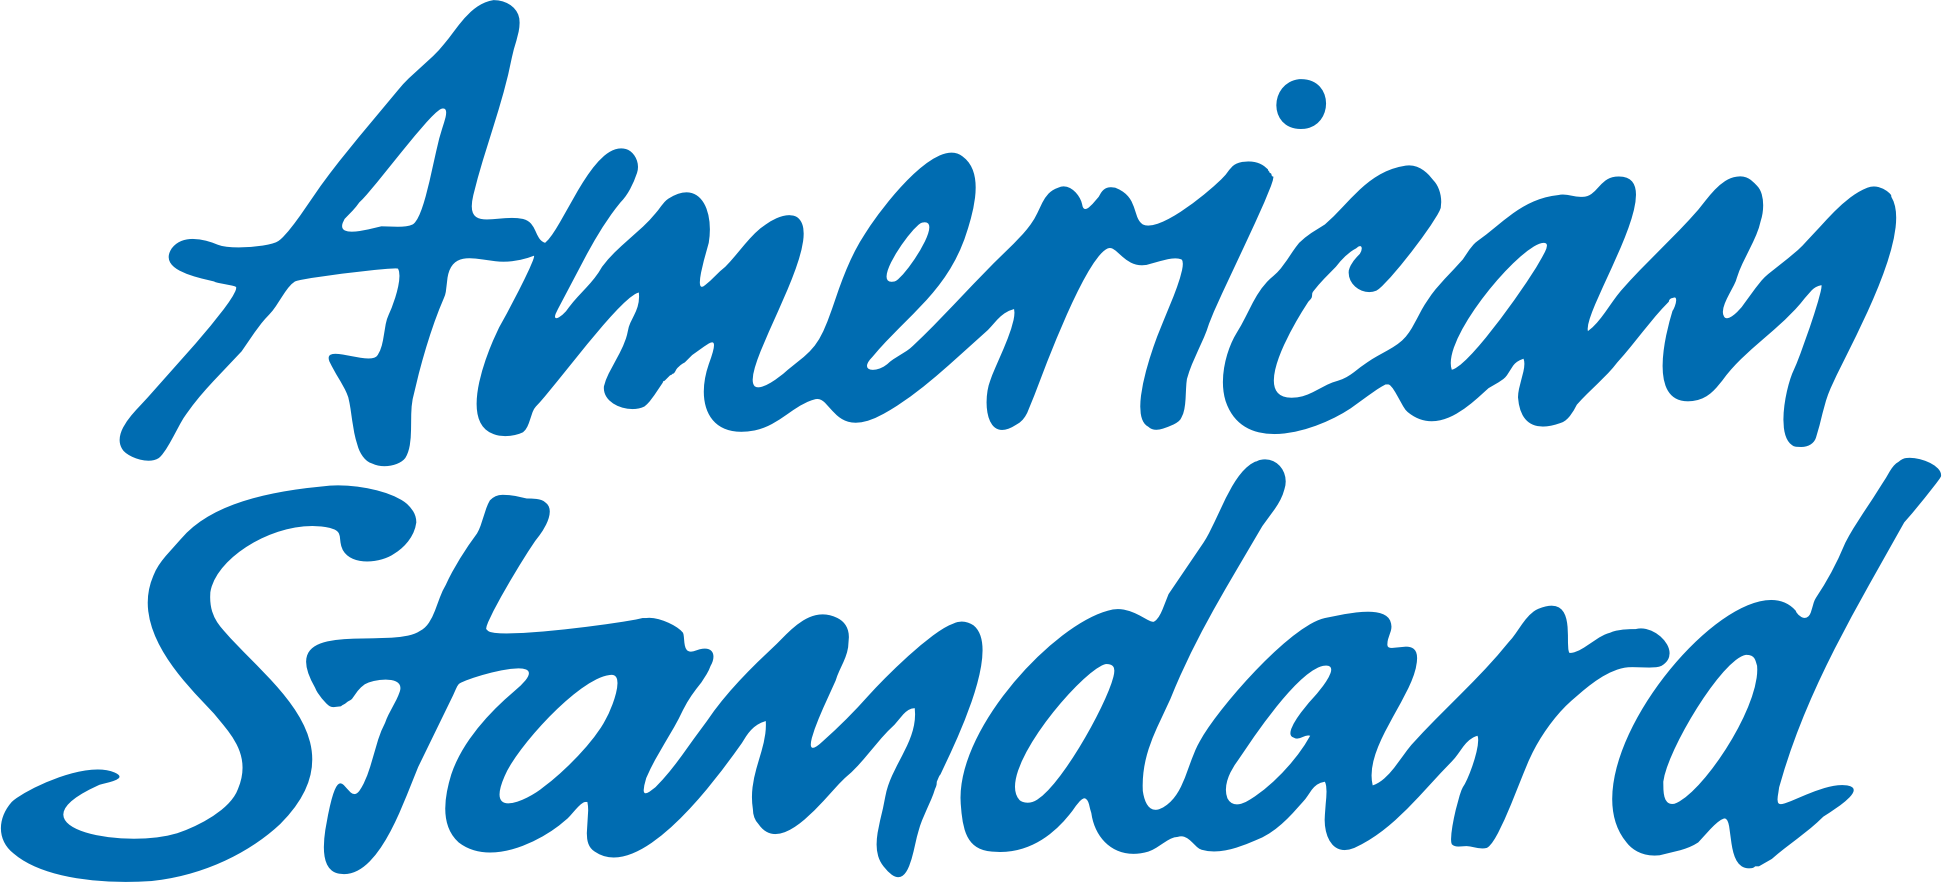 Image - American Standard.png | Logopedia | FANDOM powered by Wikia